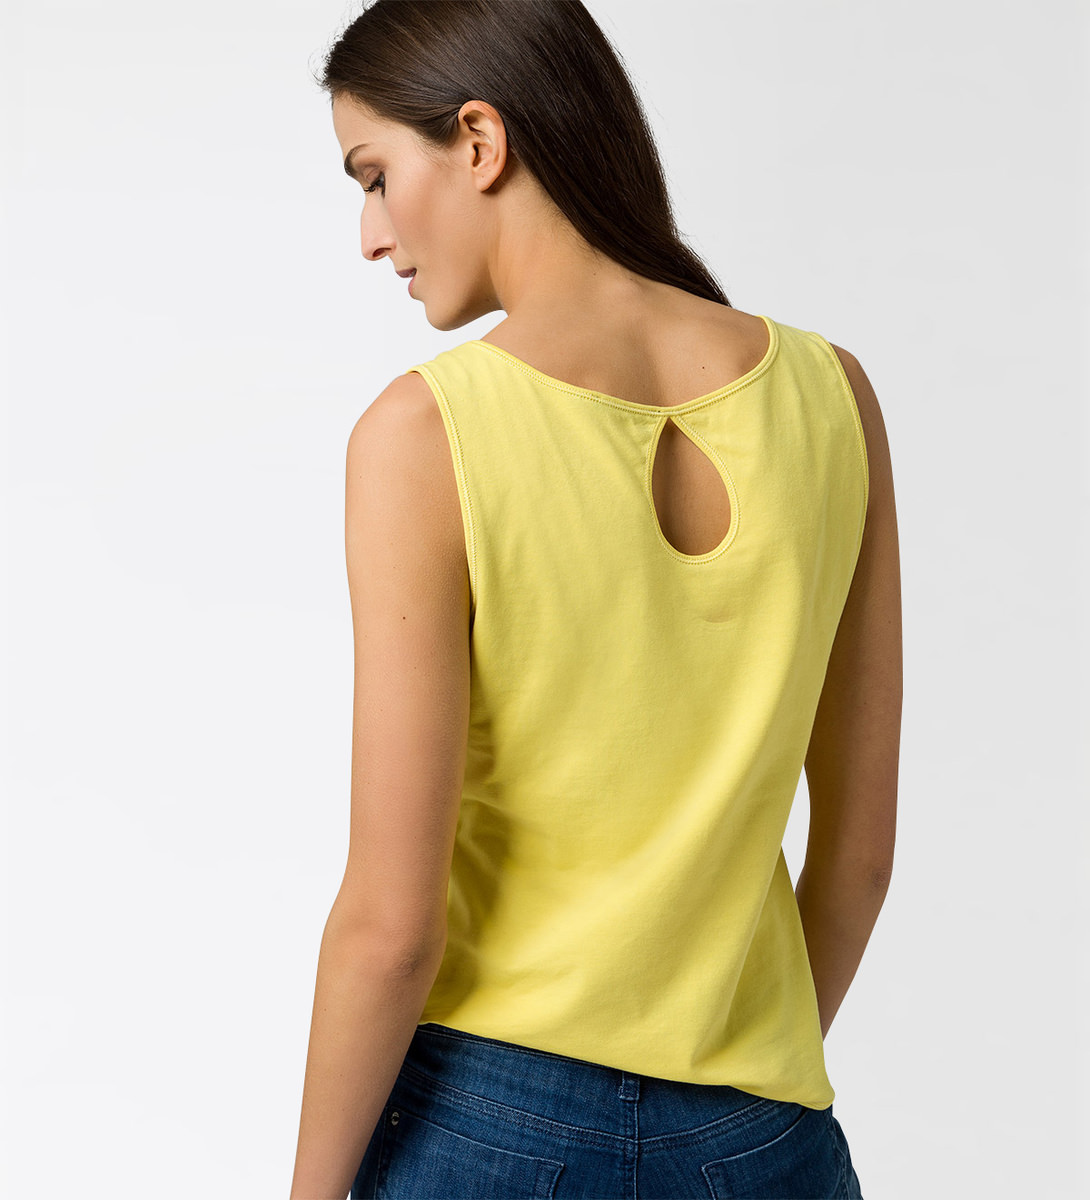 T-Shirt im Basic-Look in lemon